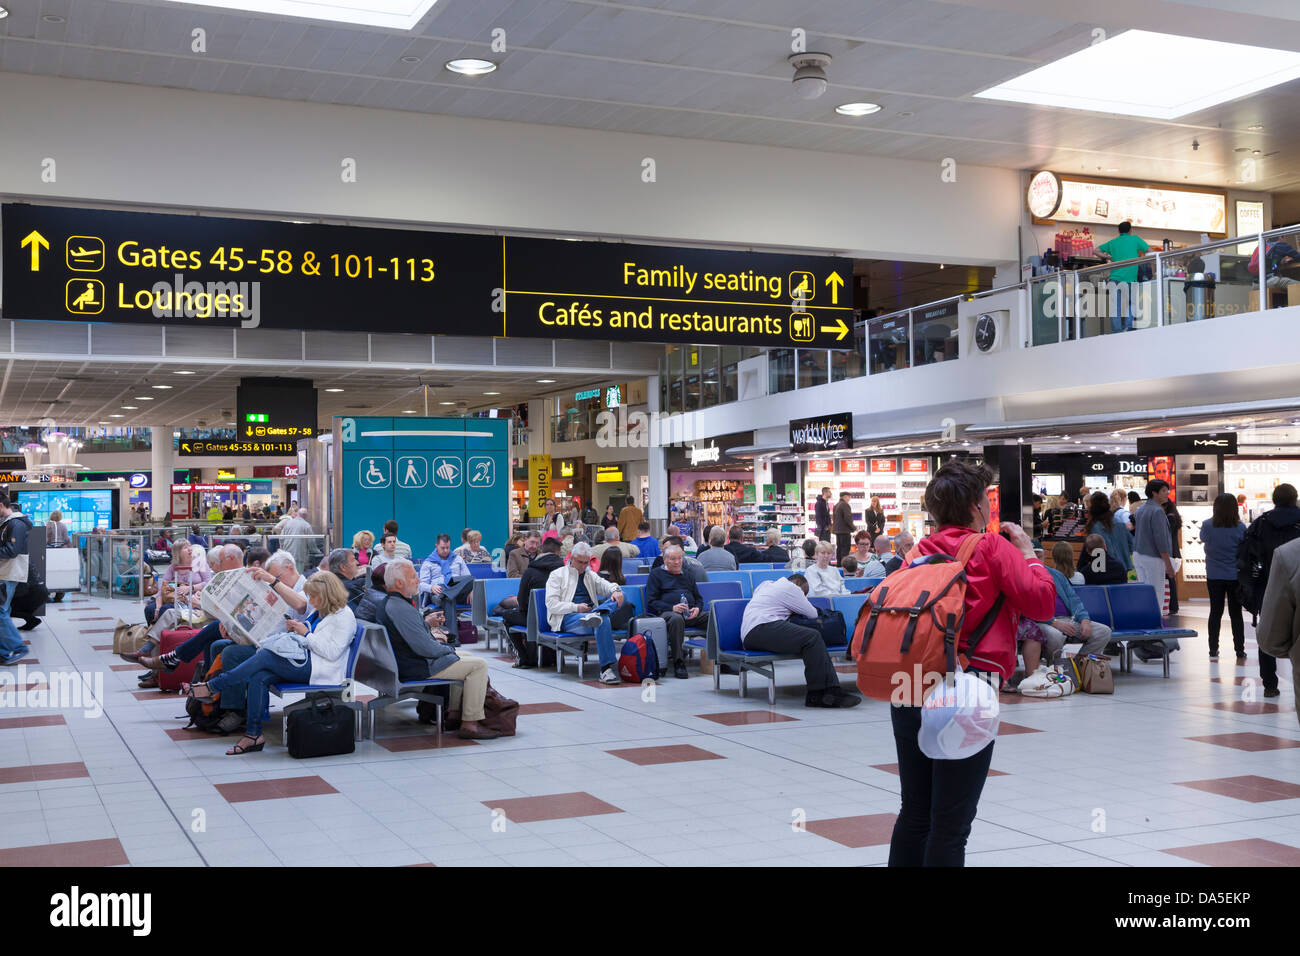 Gatwick airport departure lounge and direction signs - Stock Image